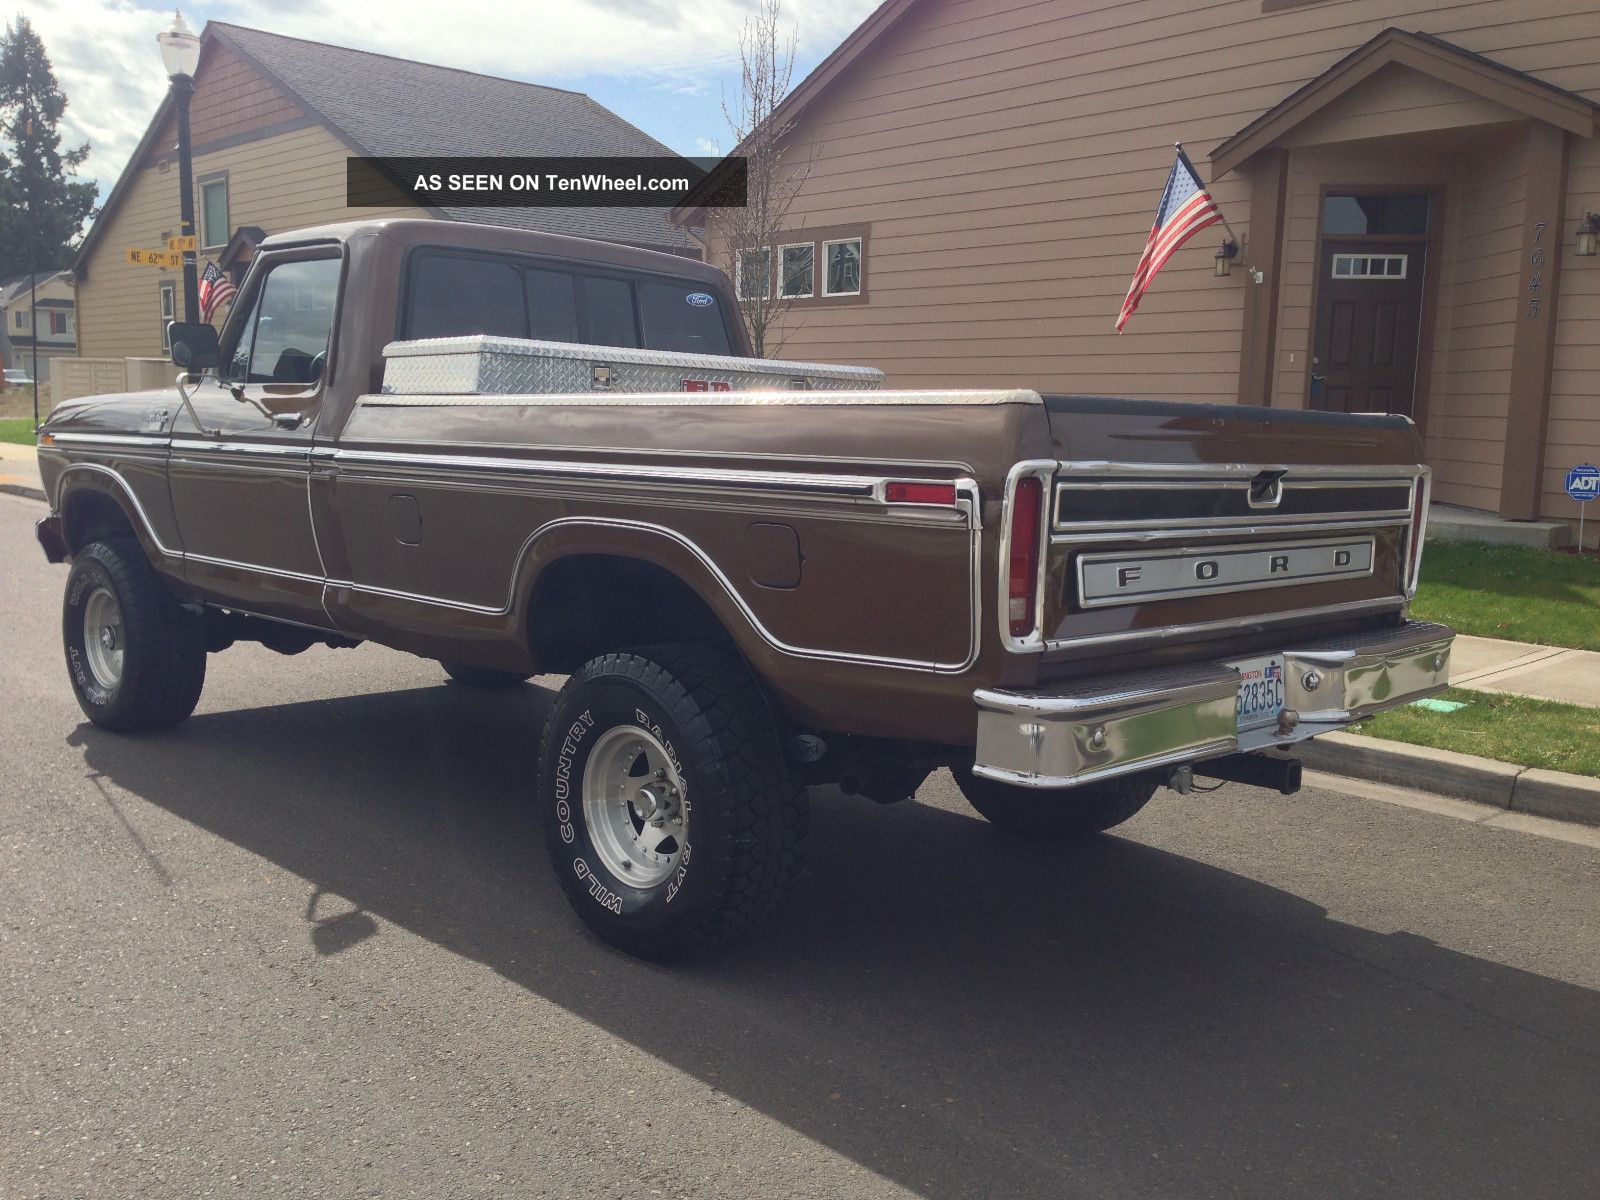 Ford f-150 1975 photo - 6